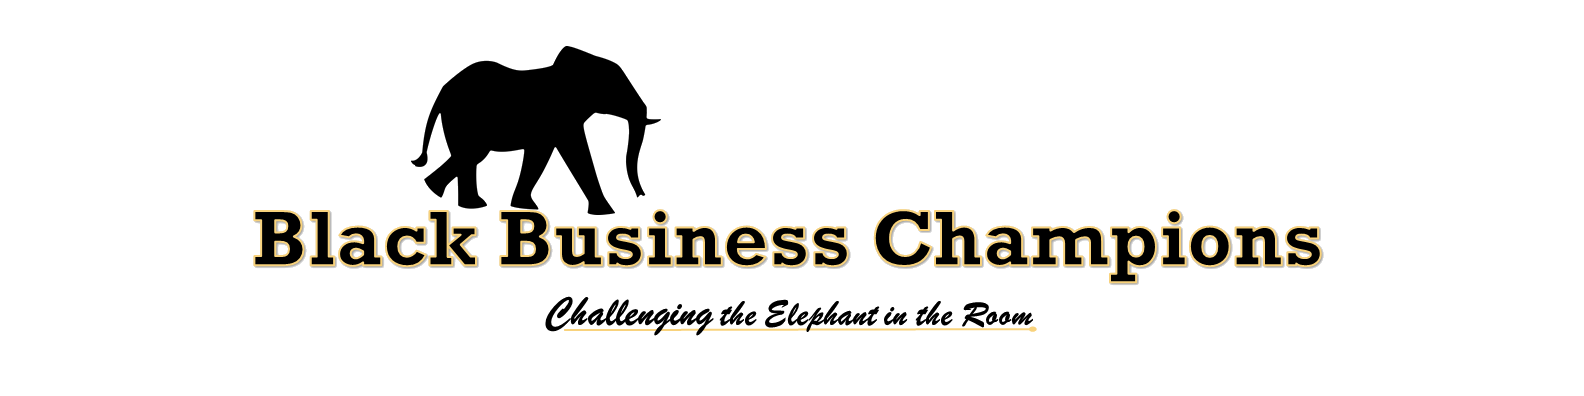 Become a Black Business Champion